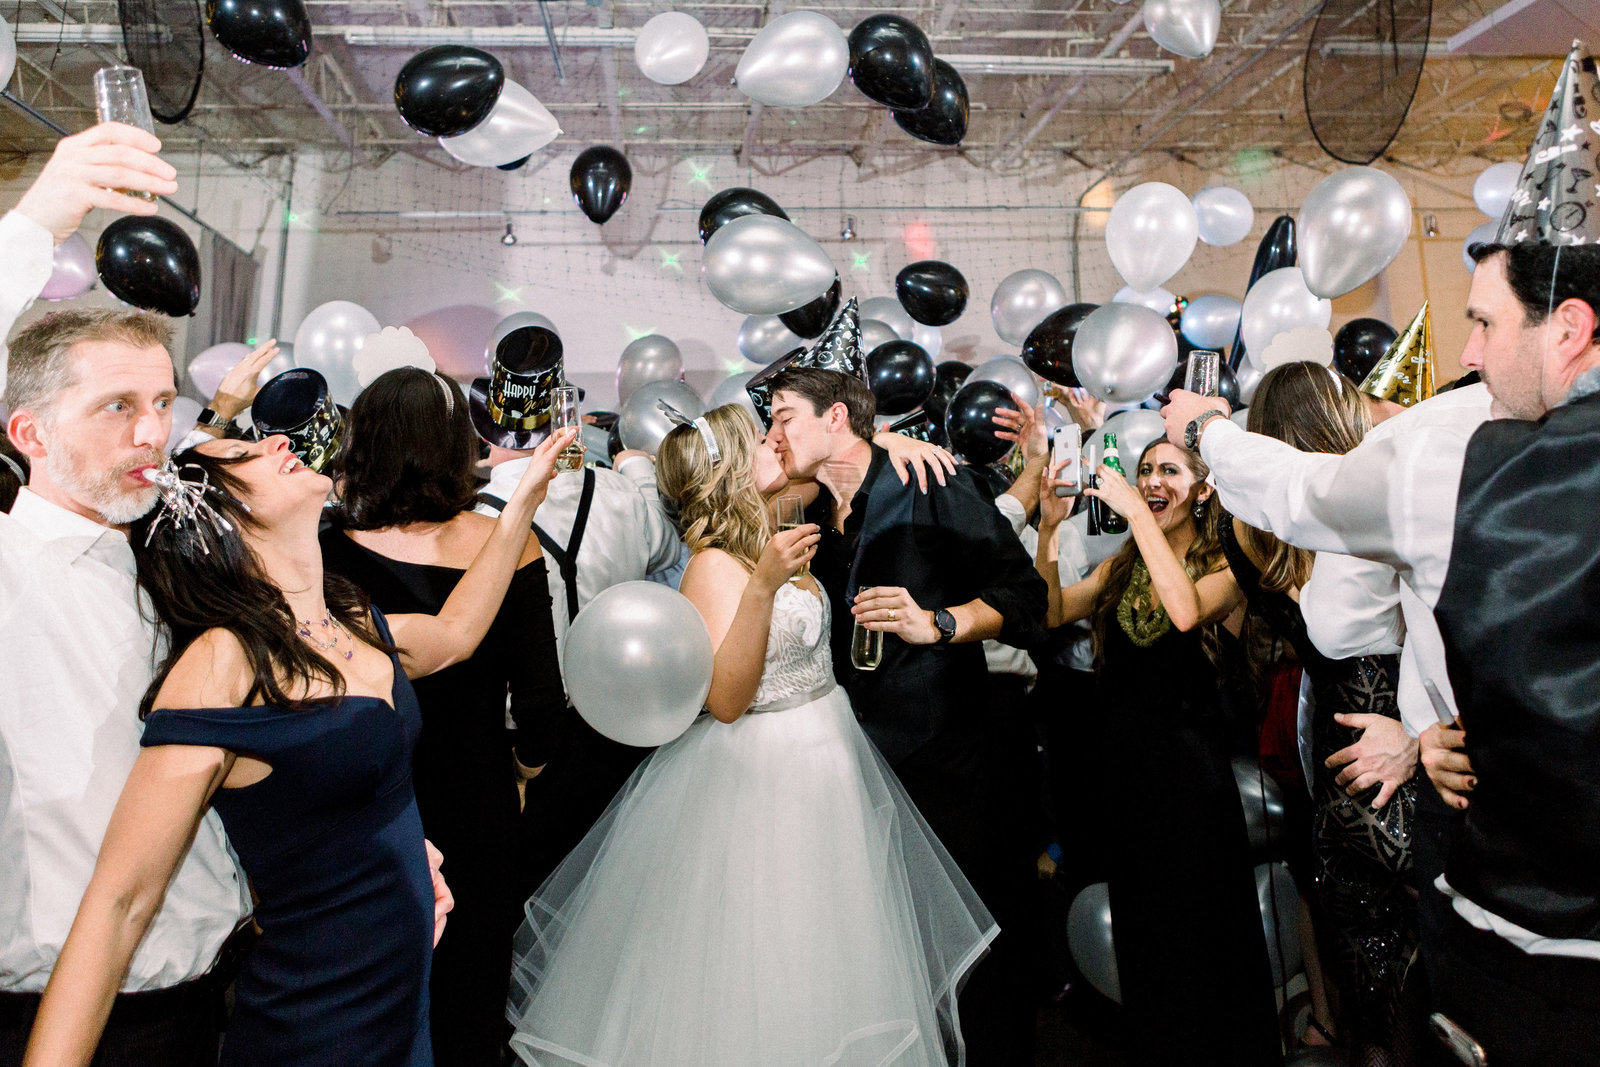 New Years Eve Wedding at American Spirit Works in Atlanta, GA. Wedding Photography for joyful, genuine brides.